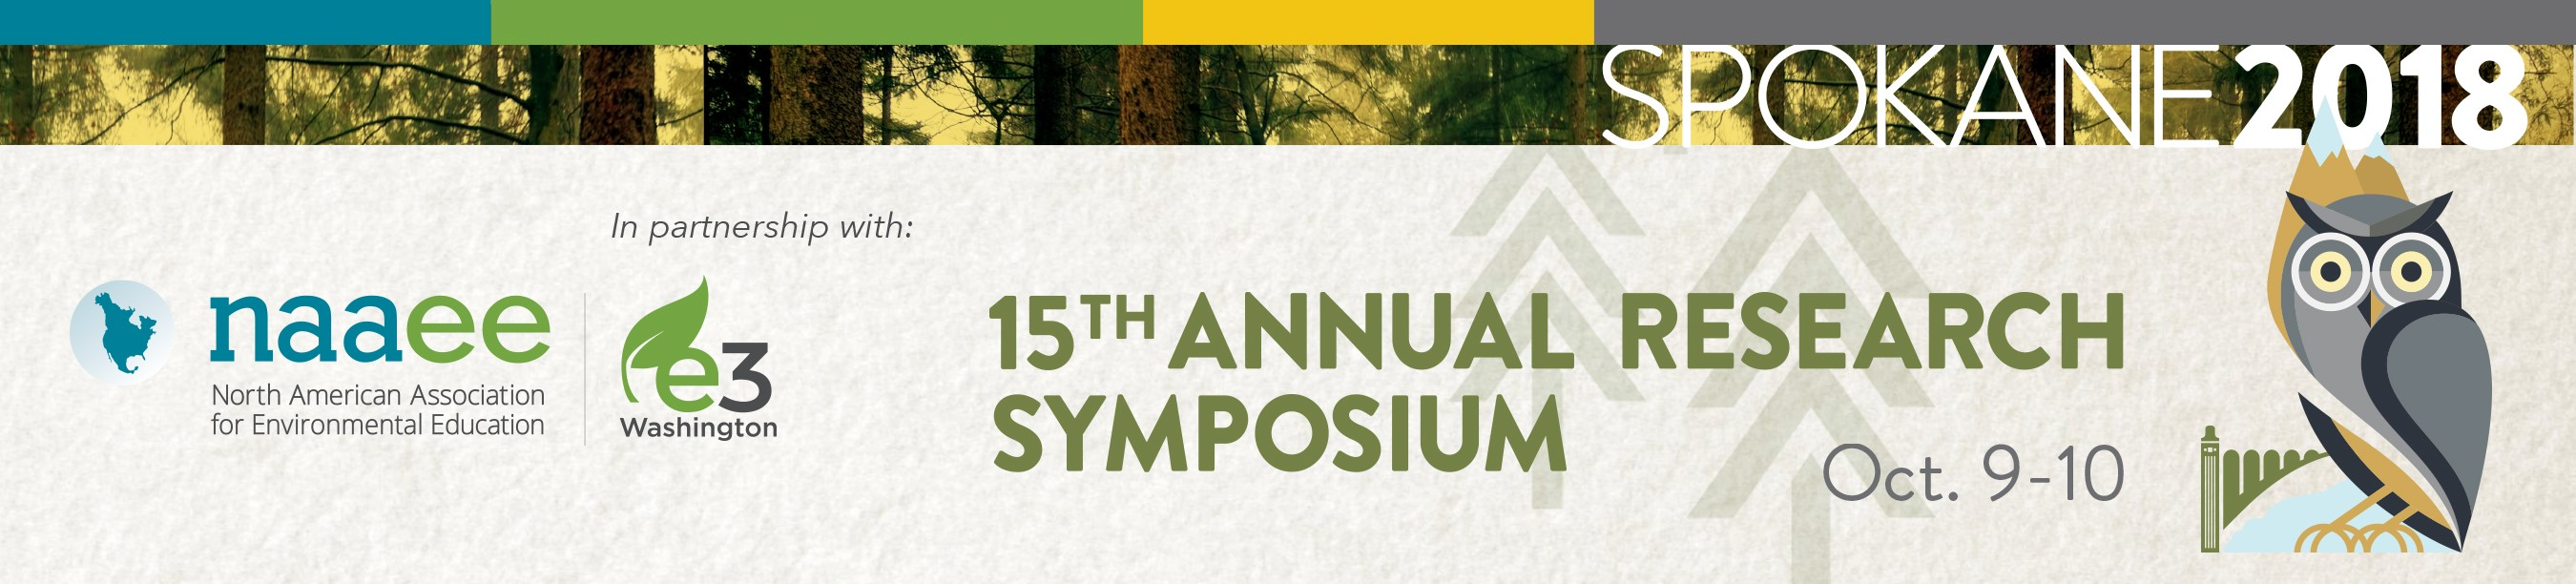 2018 NAAEE Research Symposium